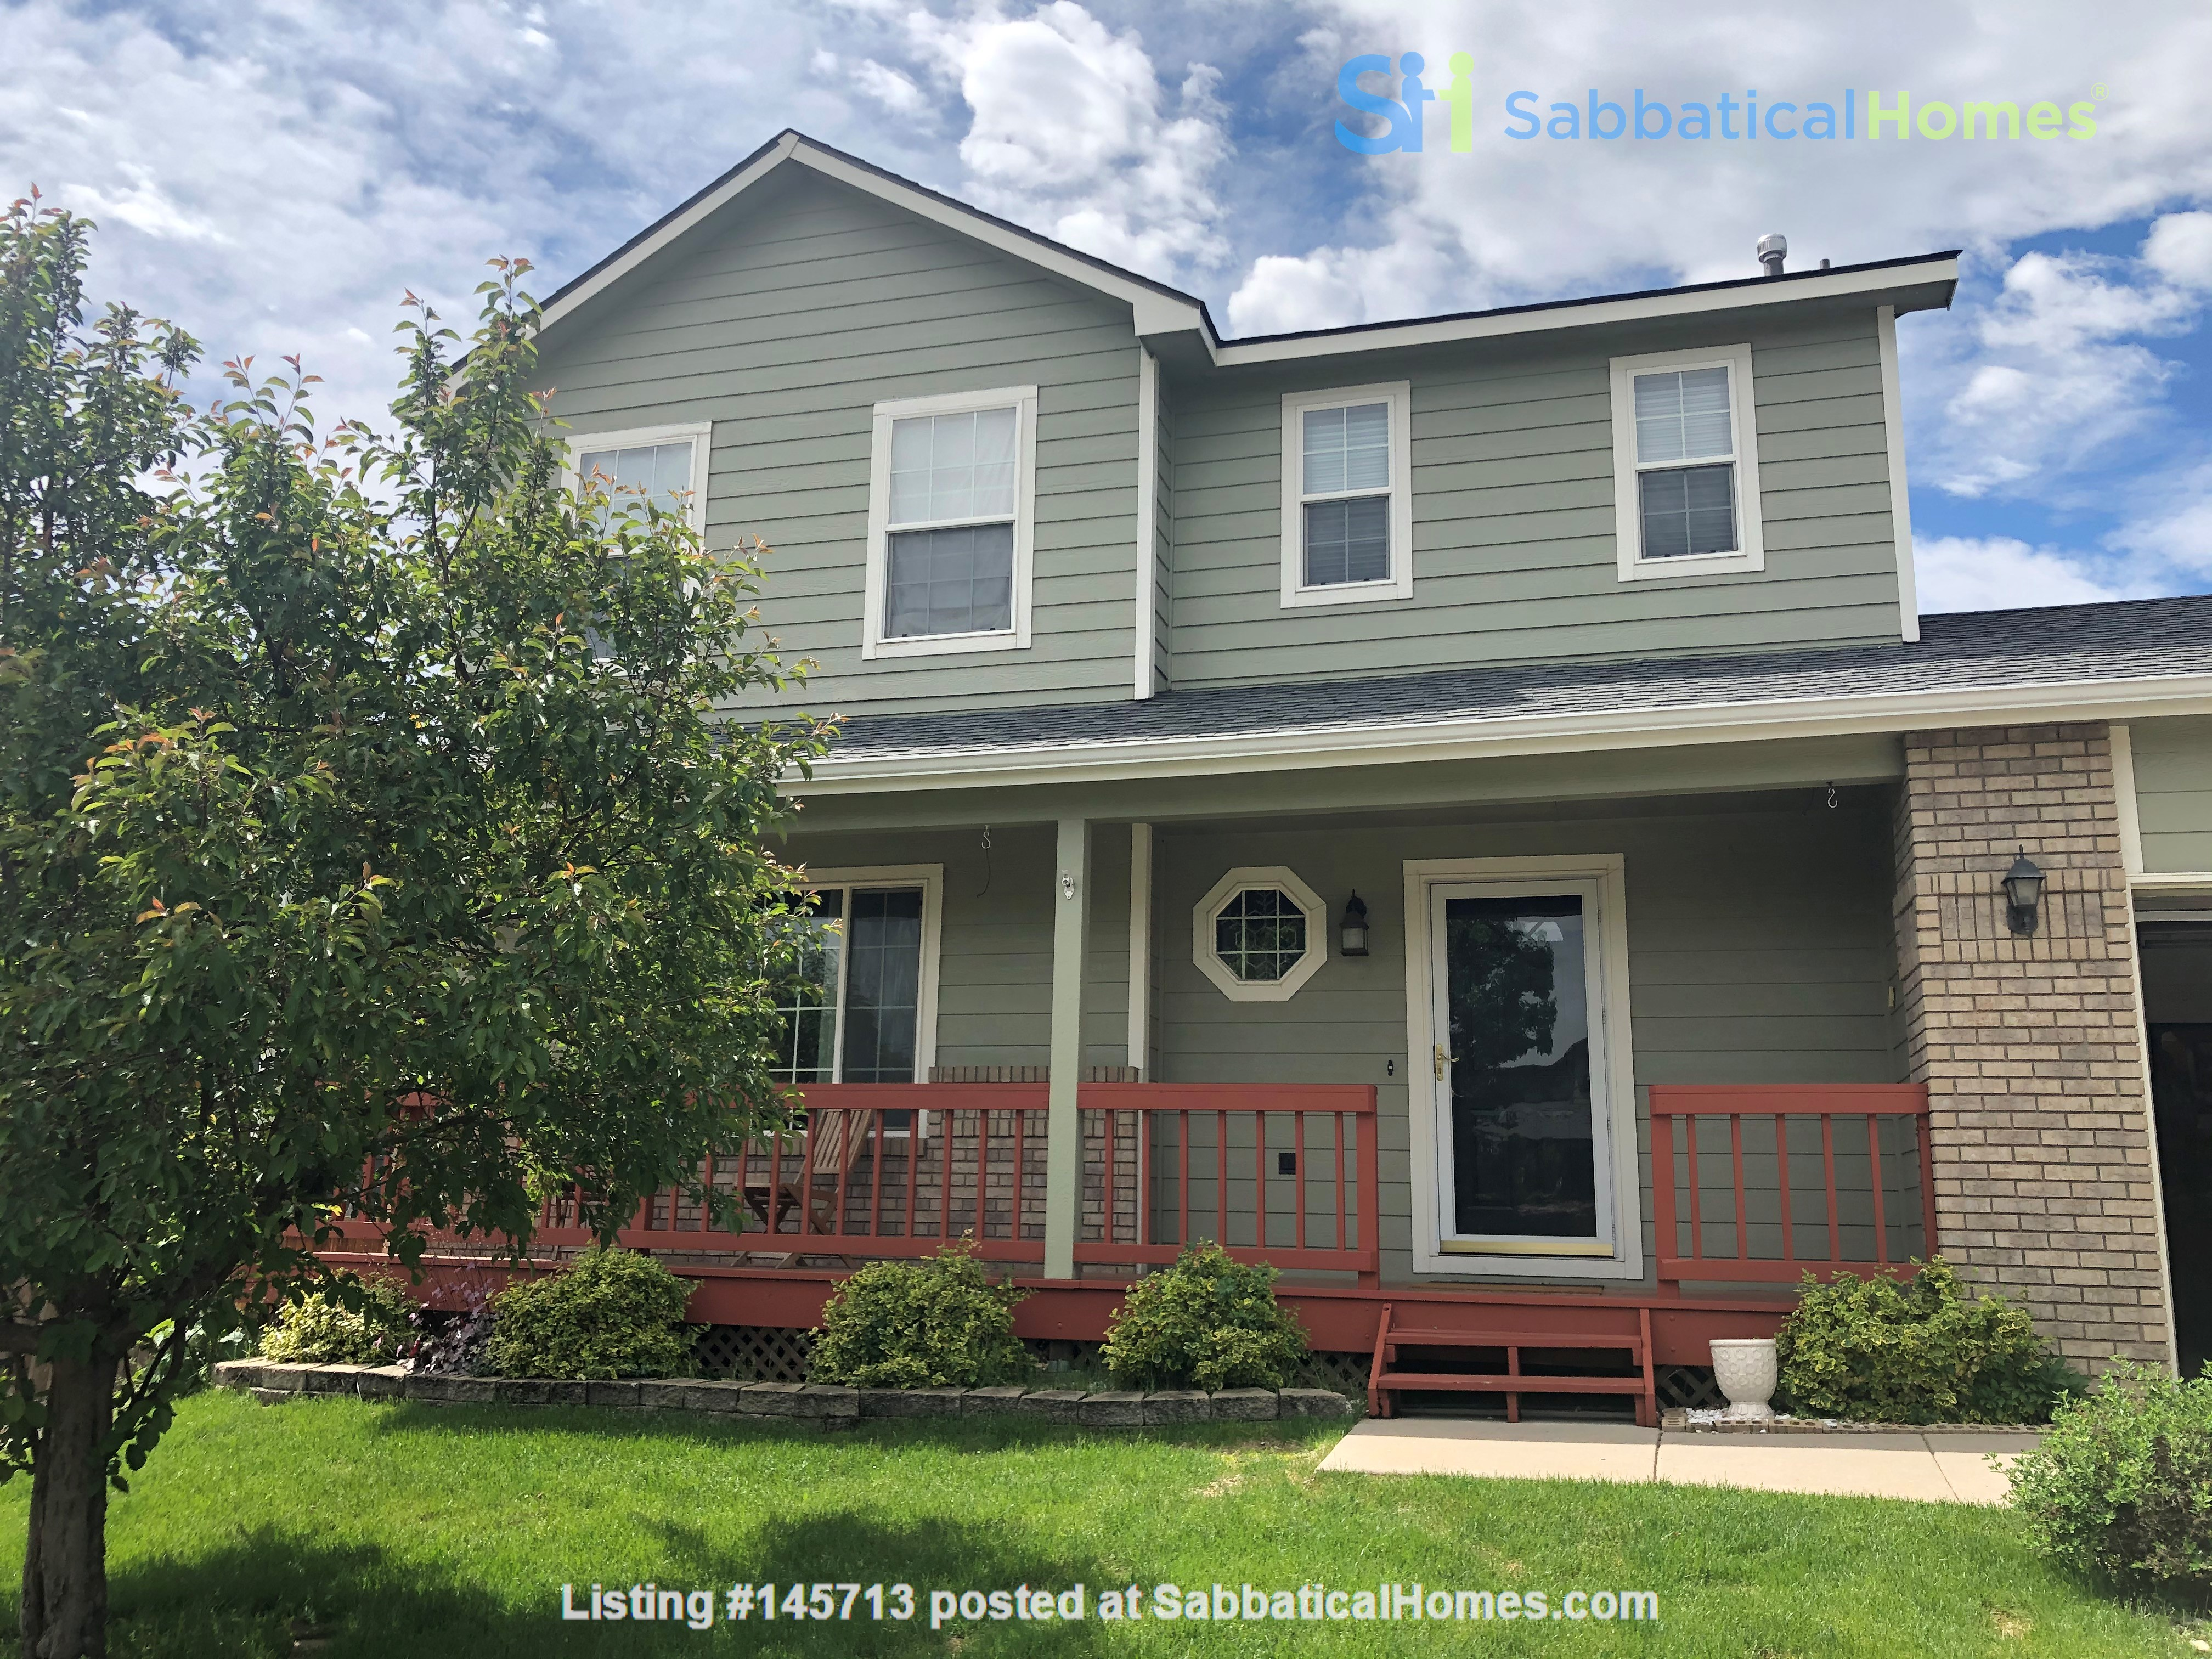 A Beautiful 2-Story House in Quiet Neighborhood, 5 Miles from CSU Campus Home Rental in Fort Collins, Colorado, United States 0